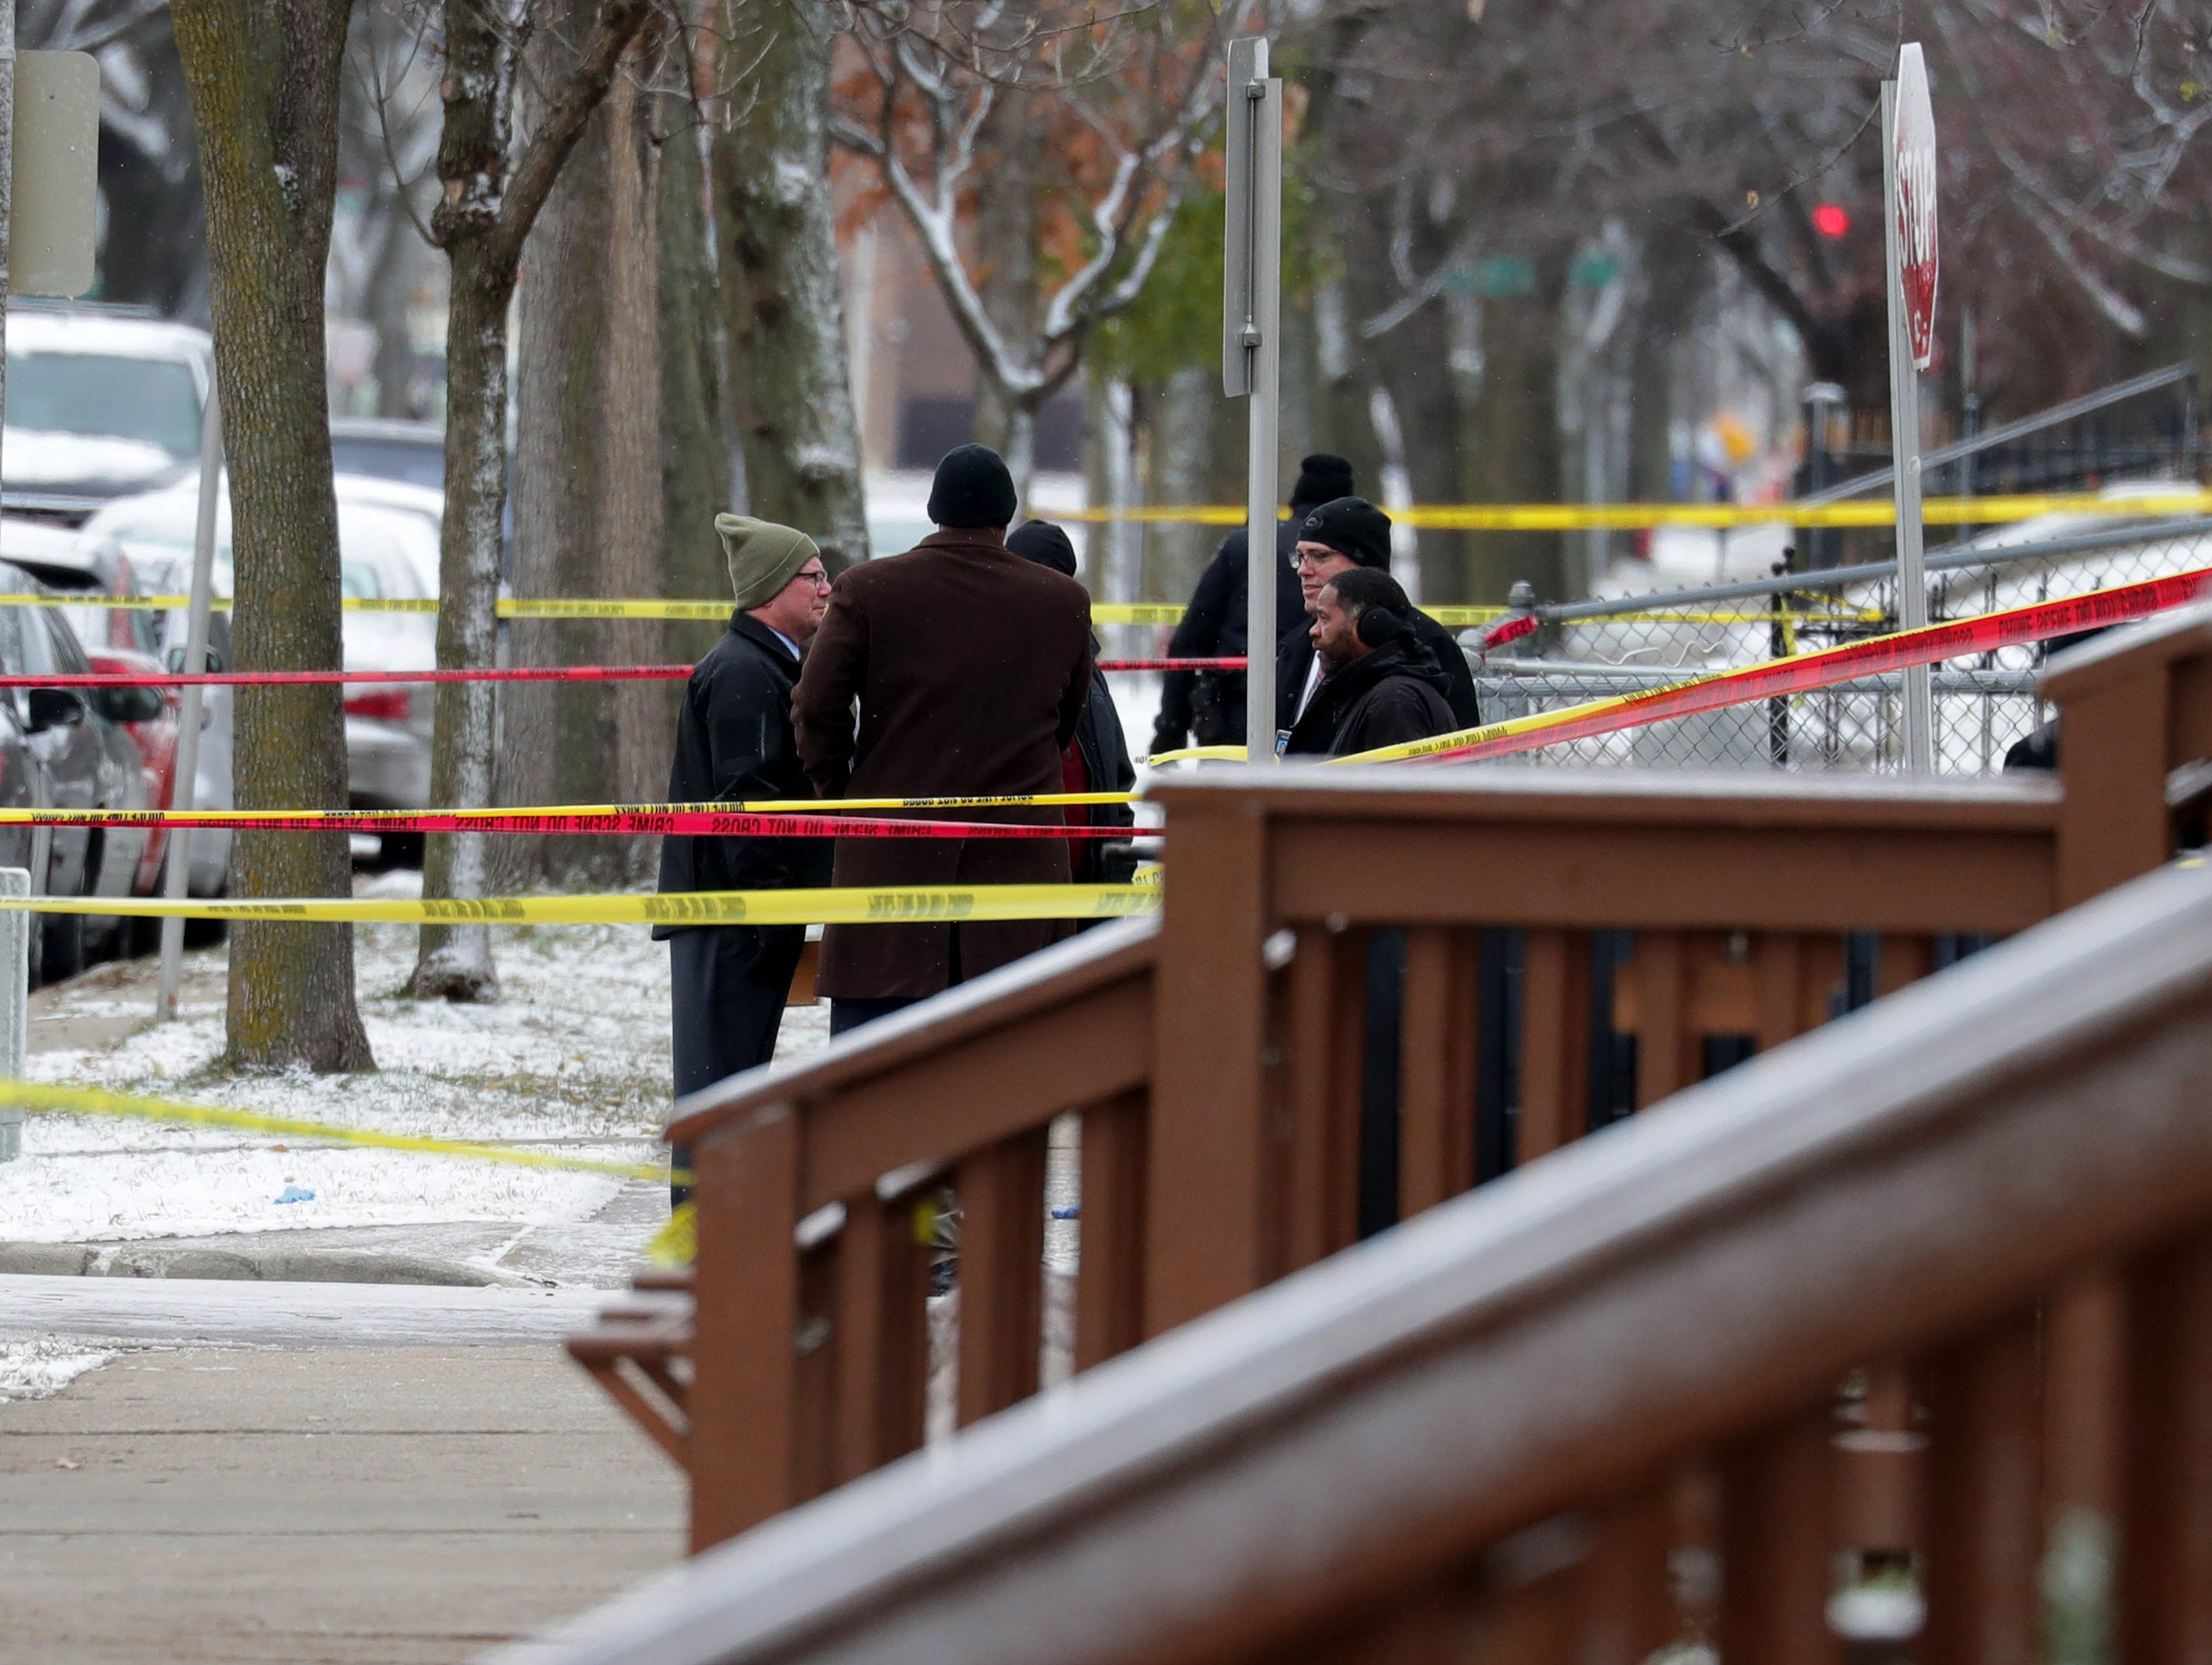 Milwaukee police investigators work at the scene of what is believed to be an officer-involved shooting in the 2800 block of West Wells Street Monday.